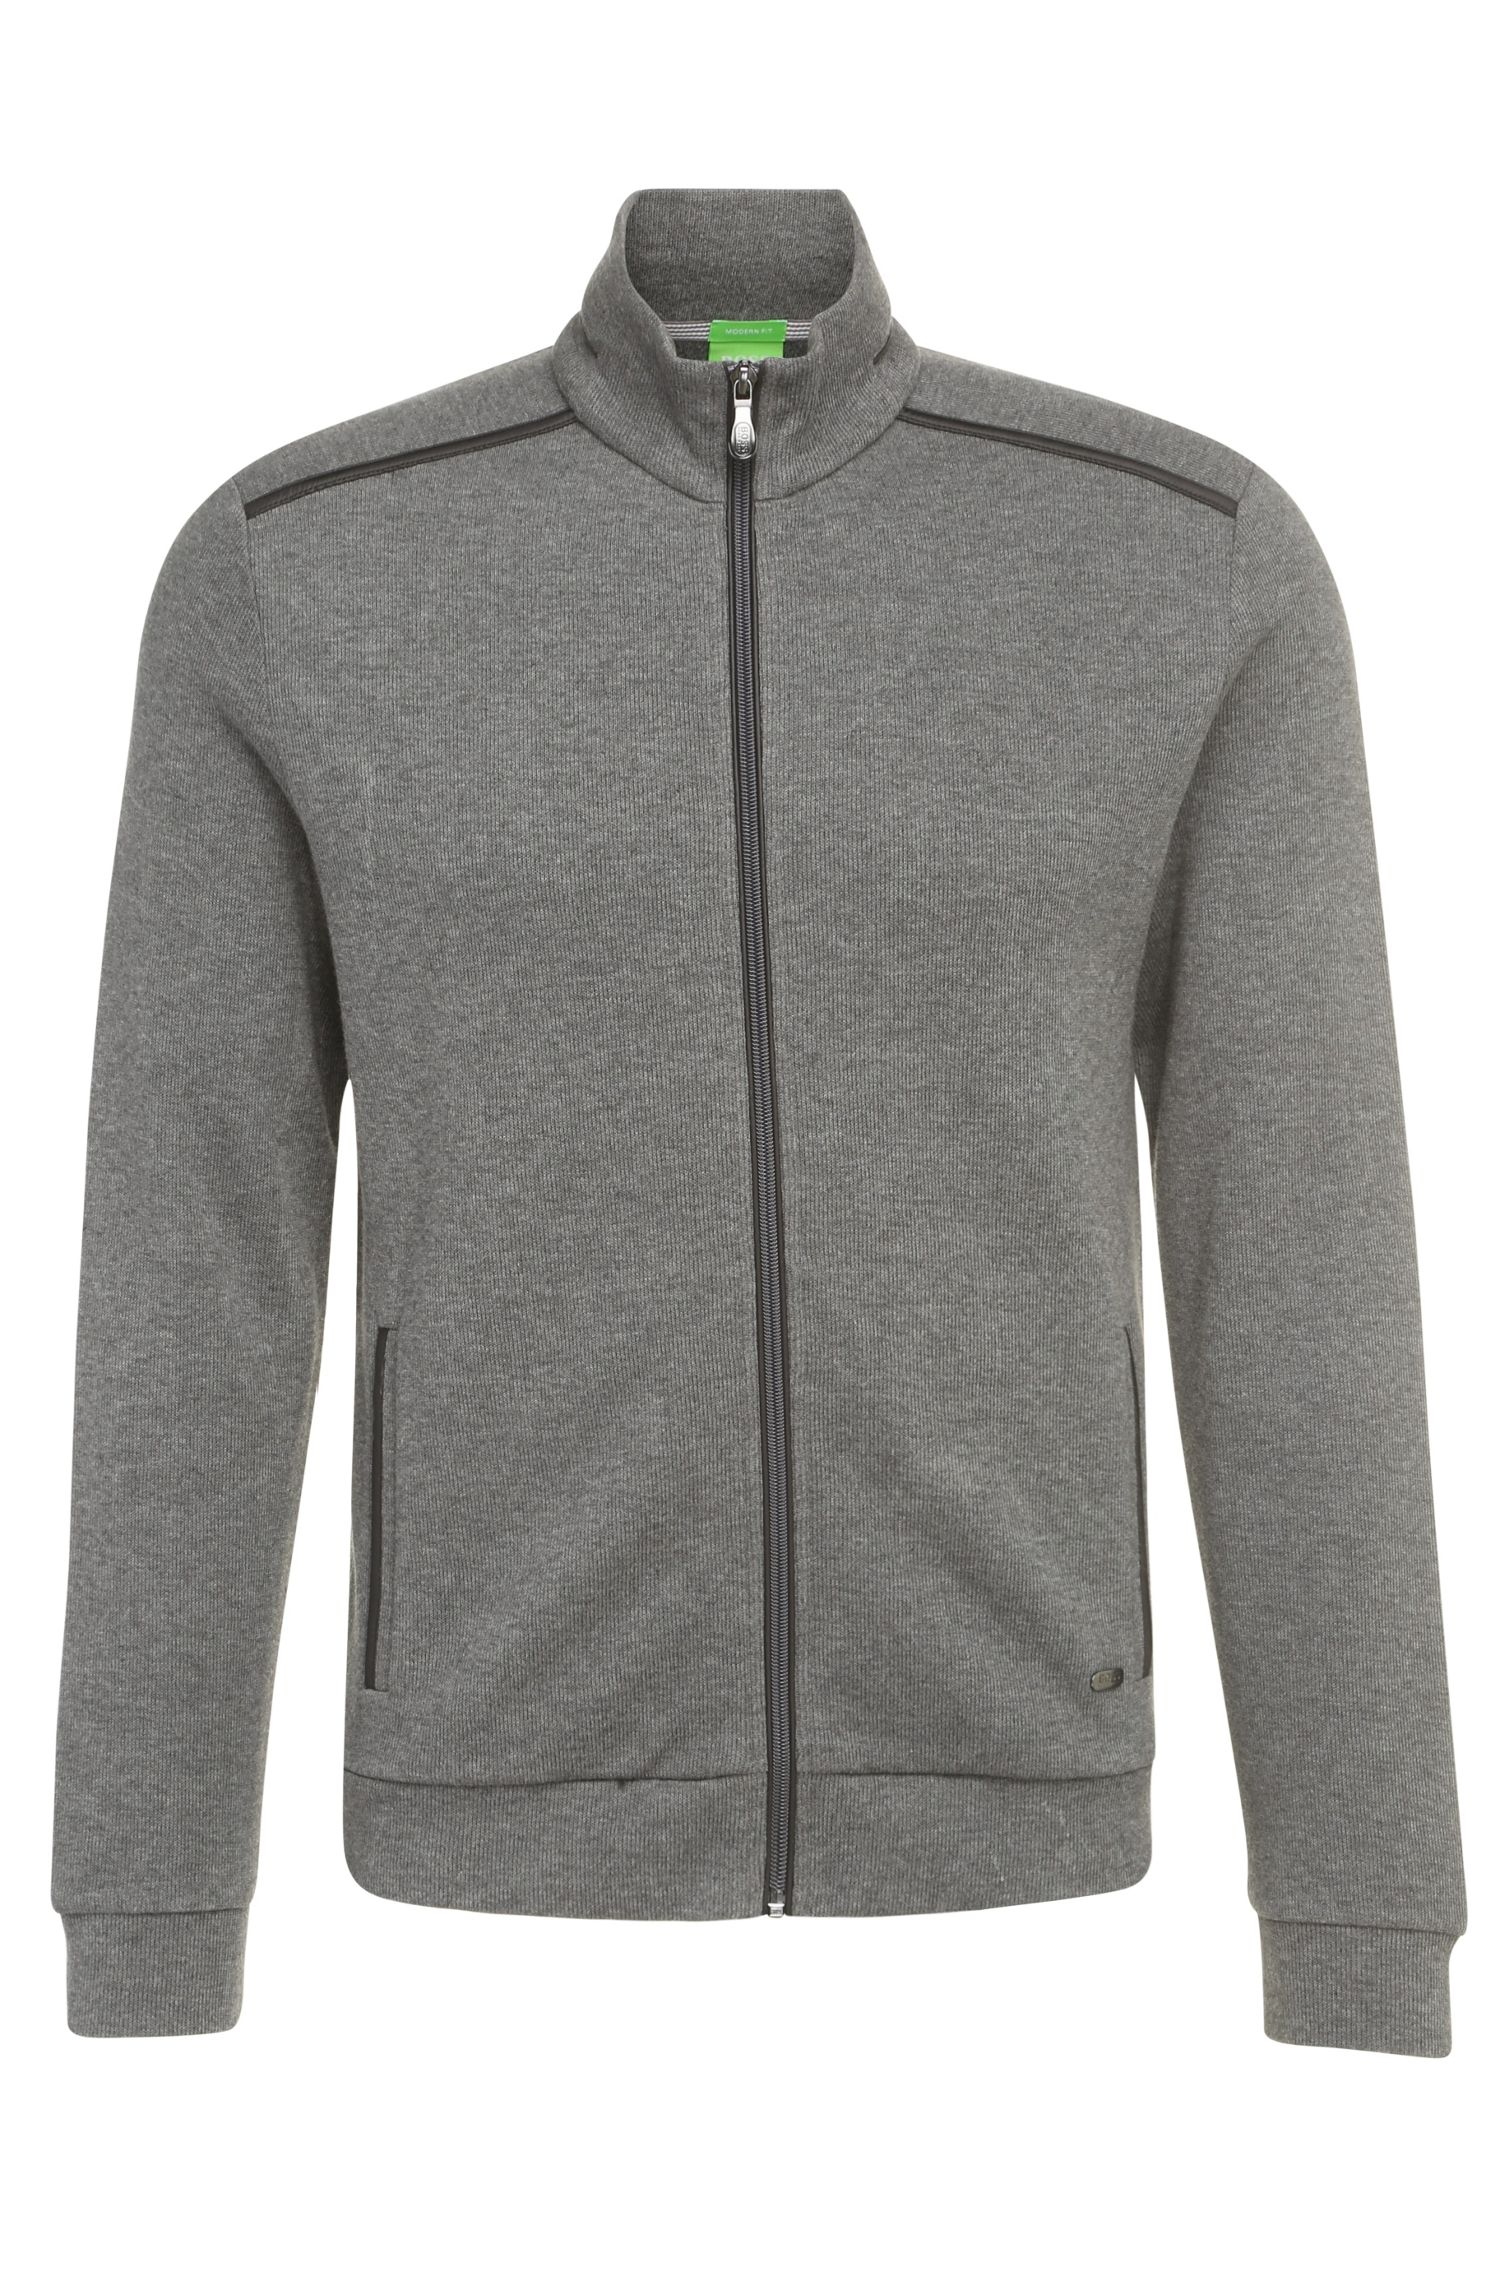 Regular-Fit Sweatshirt-Jacke aus reiner Baumwolle: ´C-Cannobio`